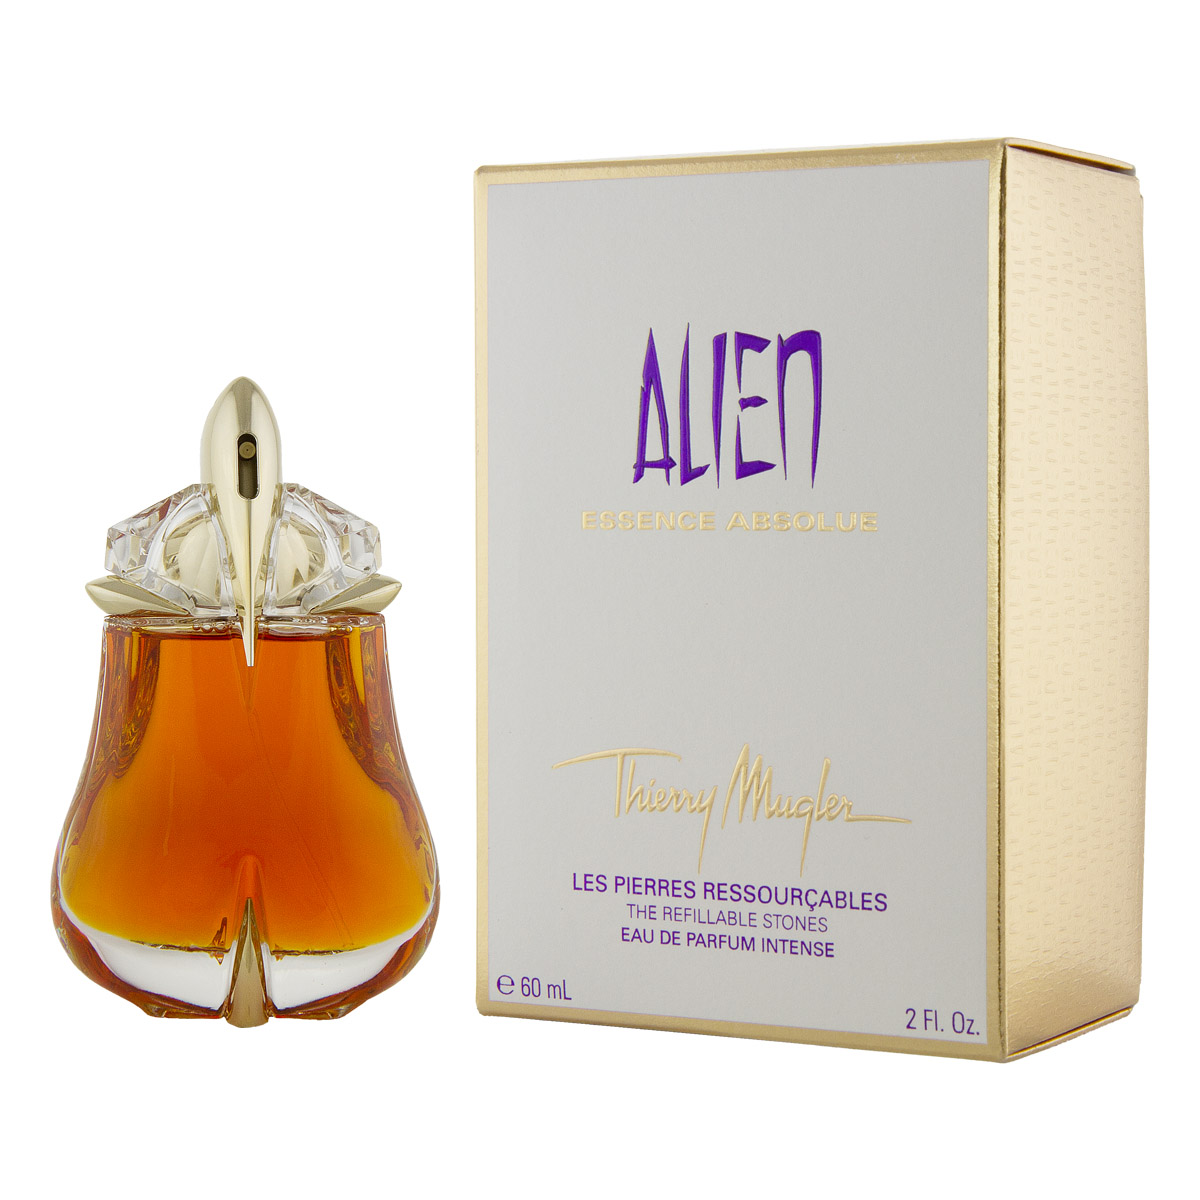 Thierry Mugler Alien Essence Absolue EDP plnitelný 60 ml W